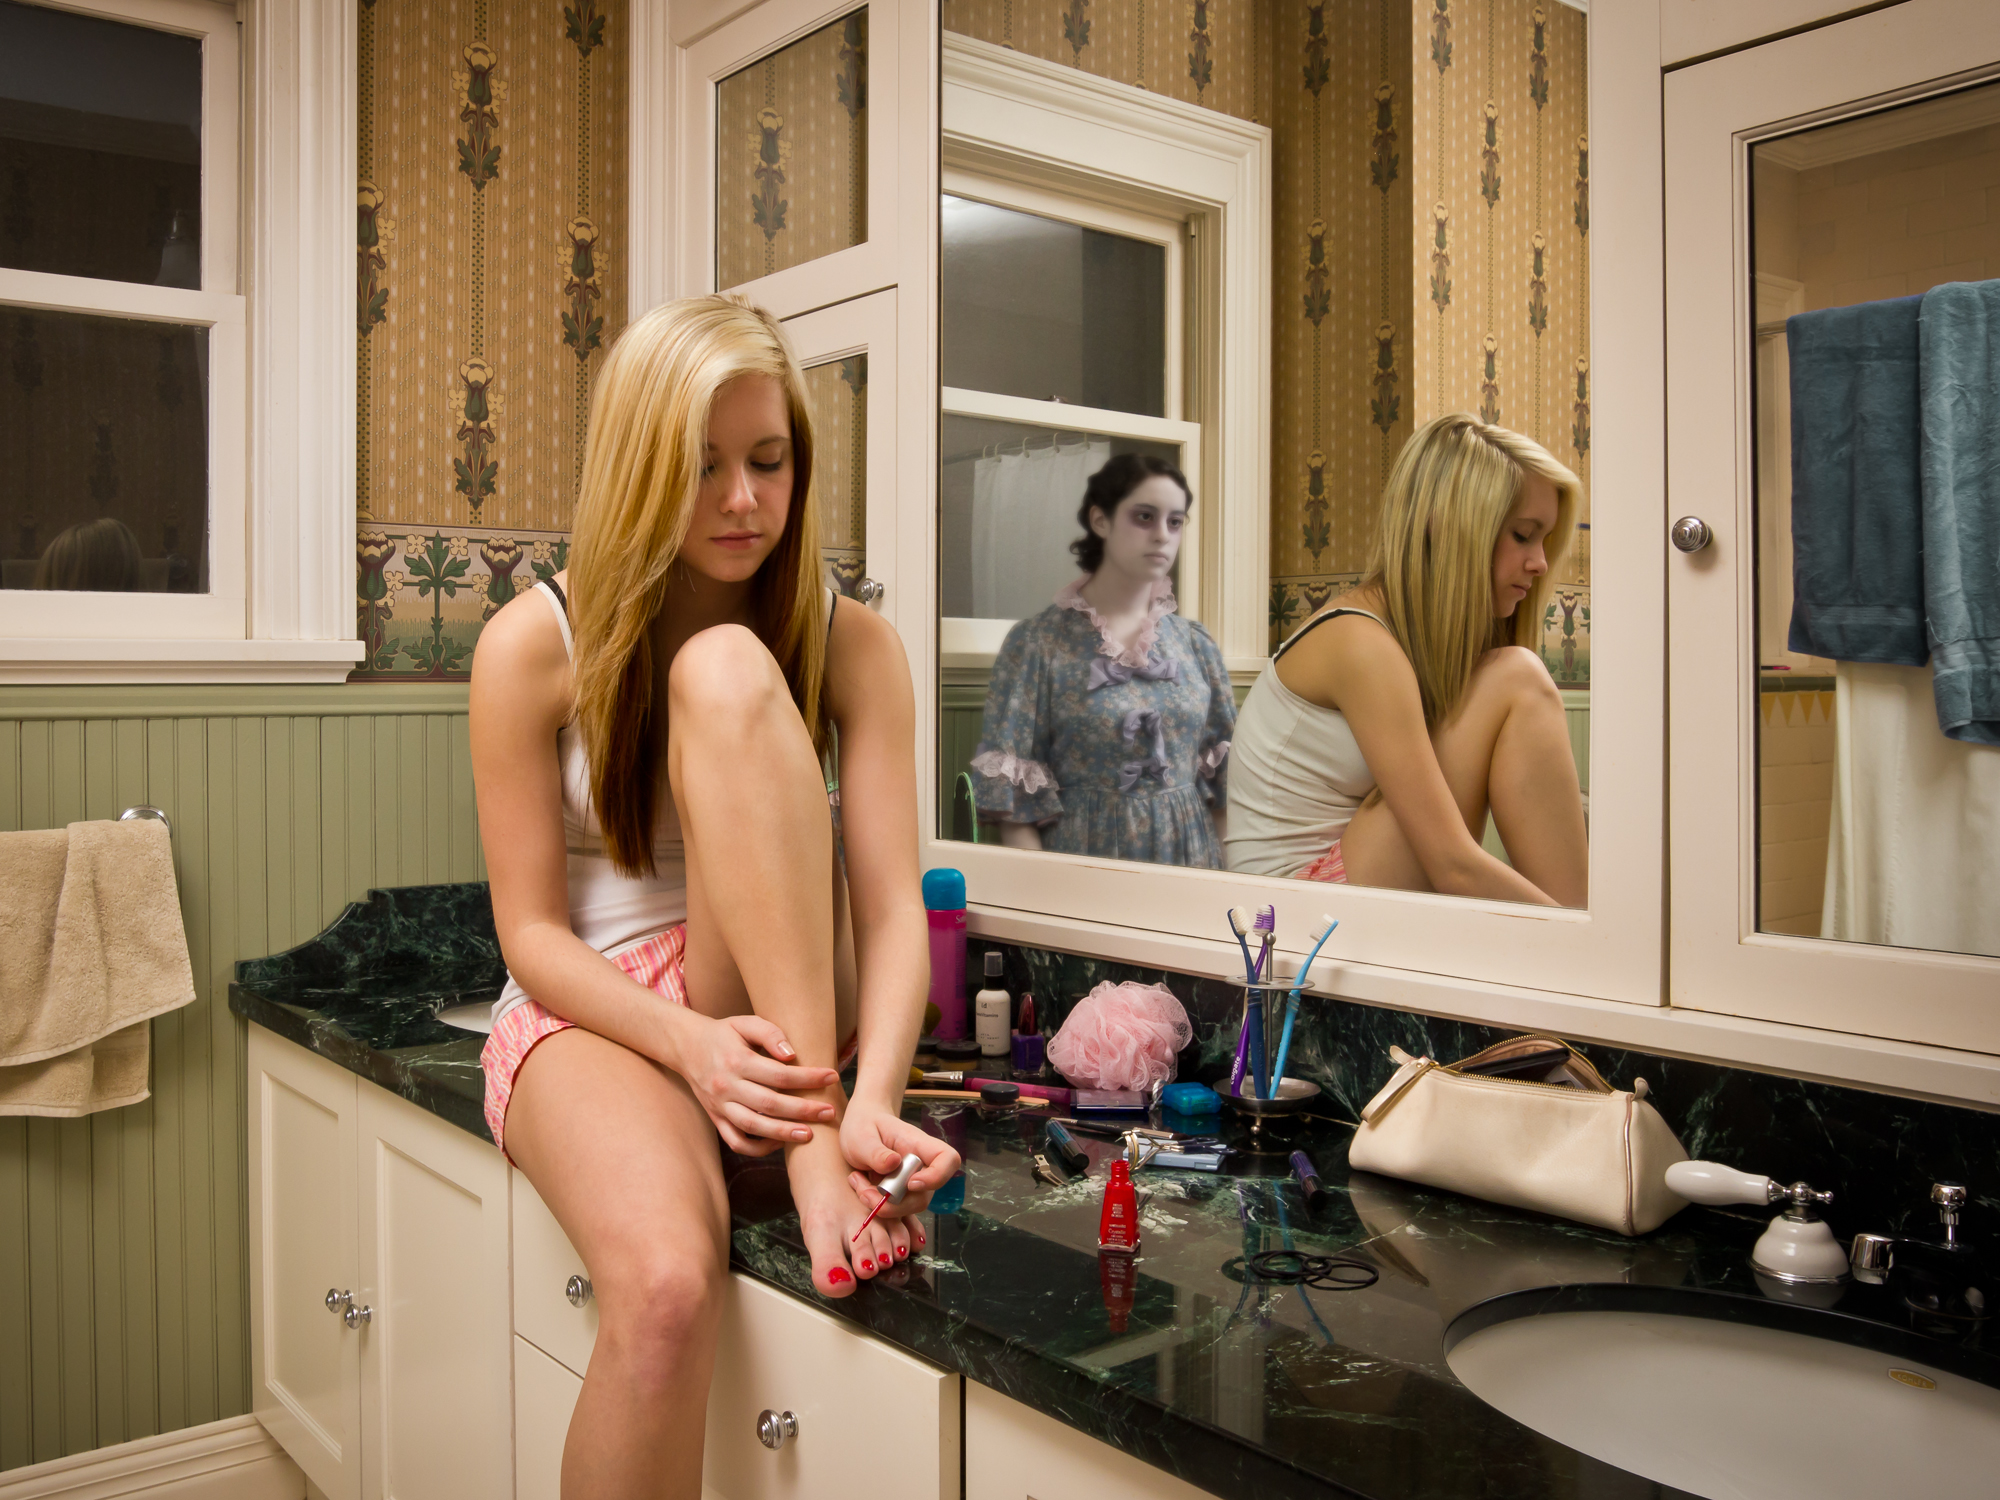 """Ashley in her Bathroom"" (from ""Glimmer: The Haunting of Graham House"") by Christopher Schneberger"